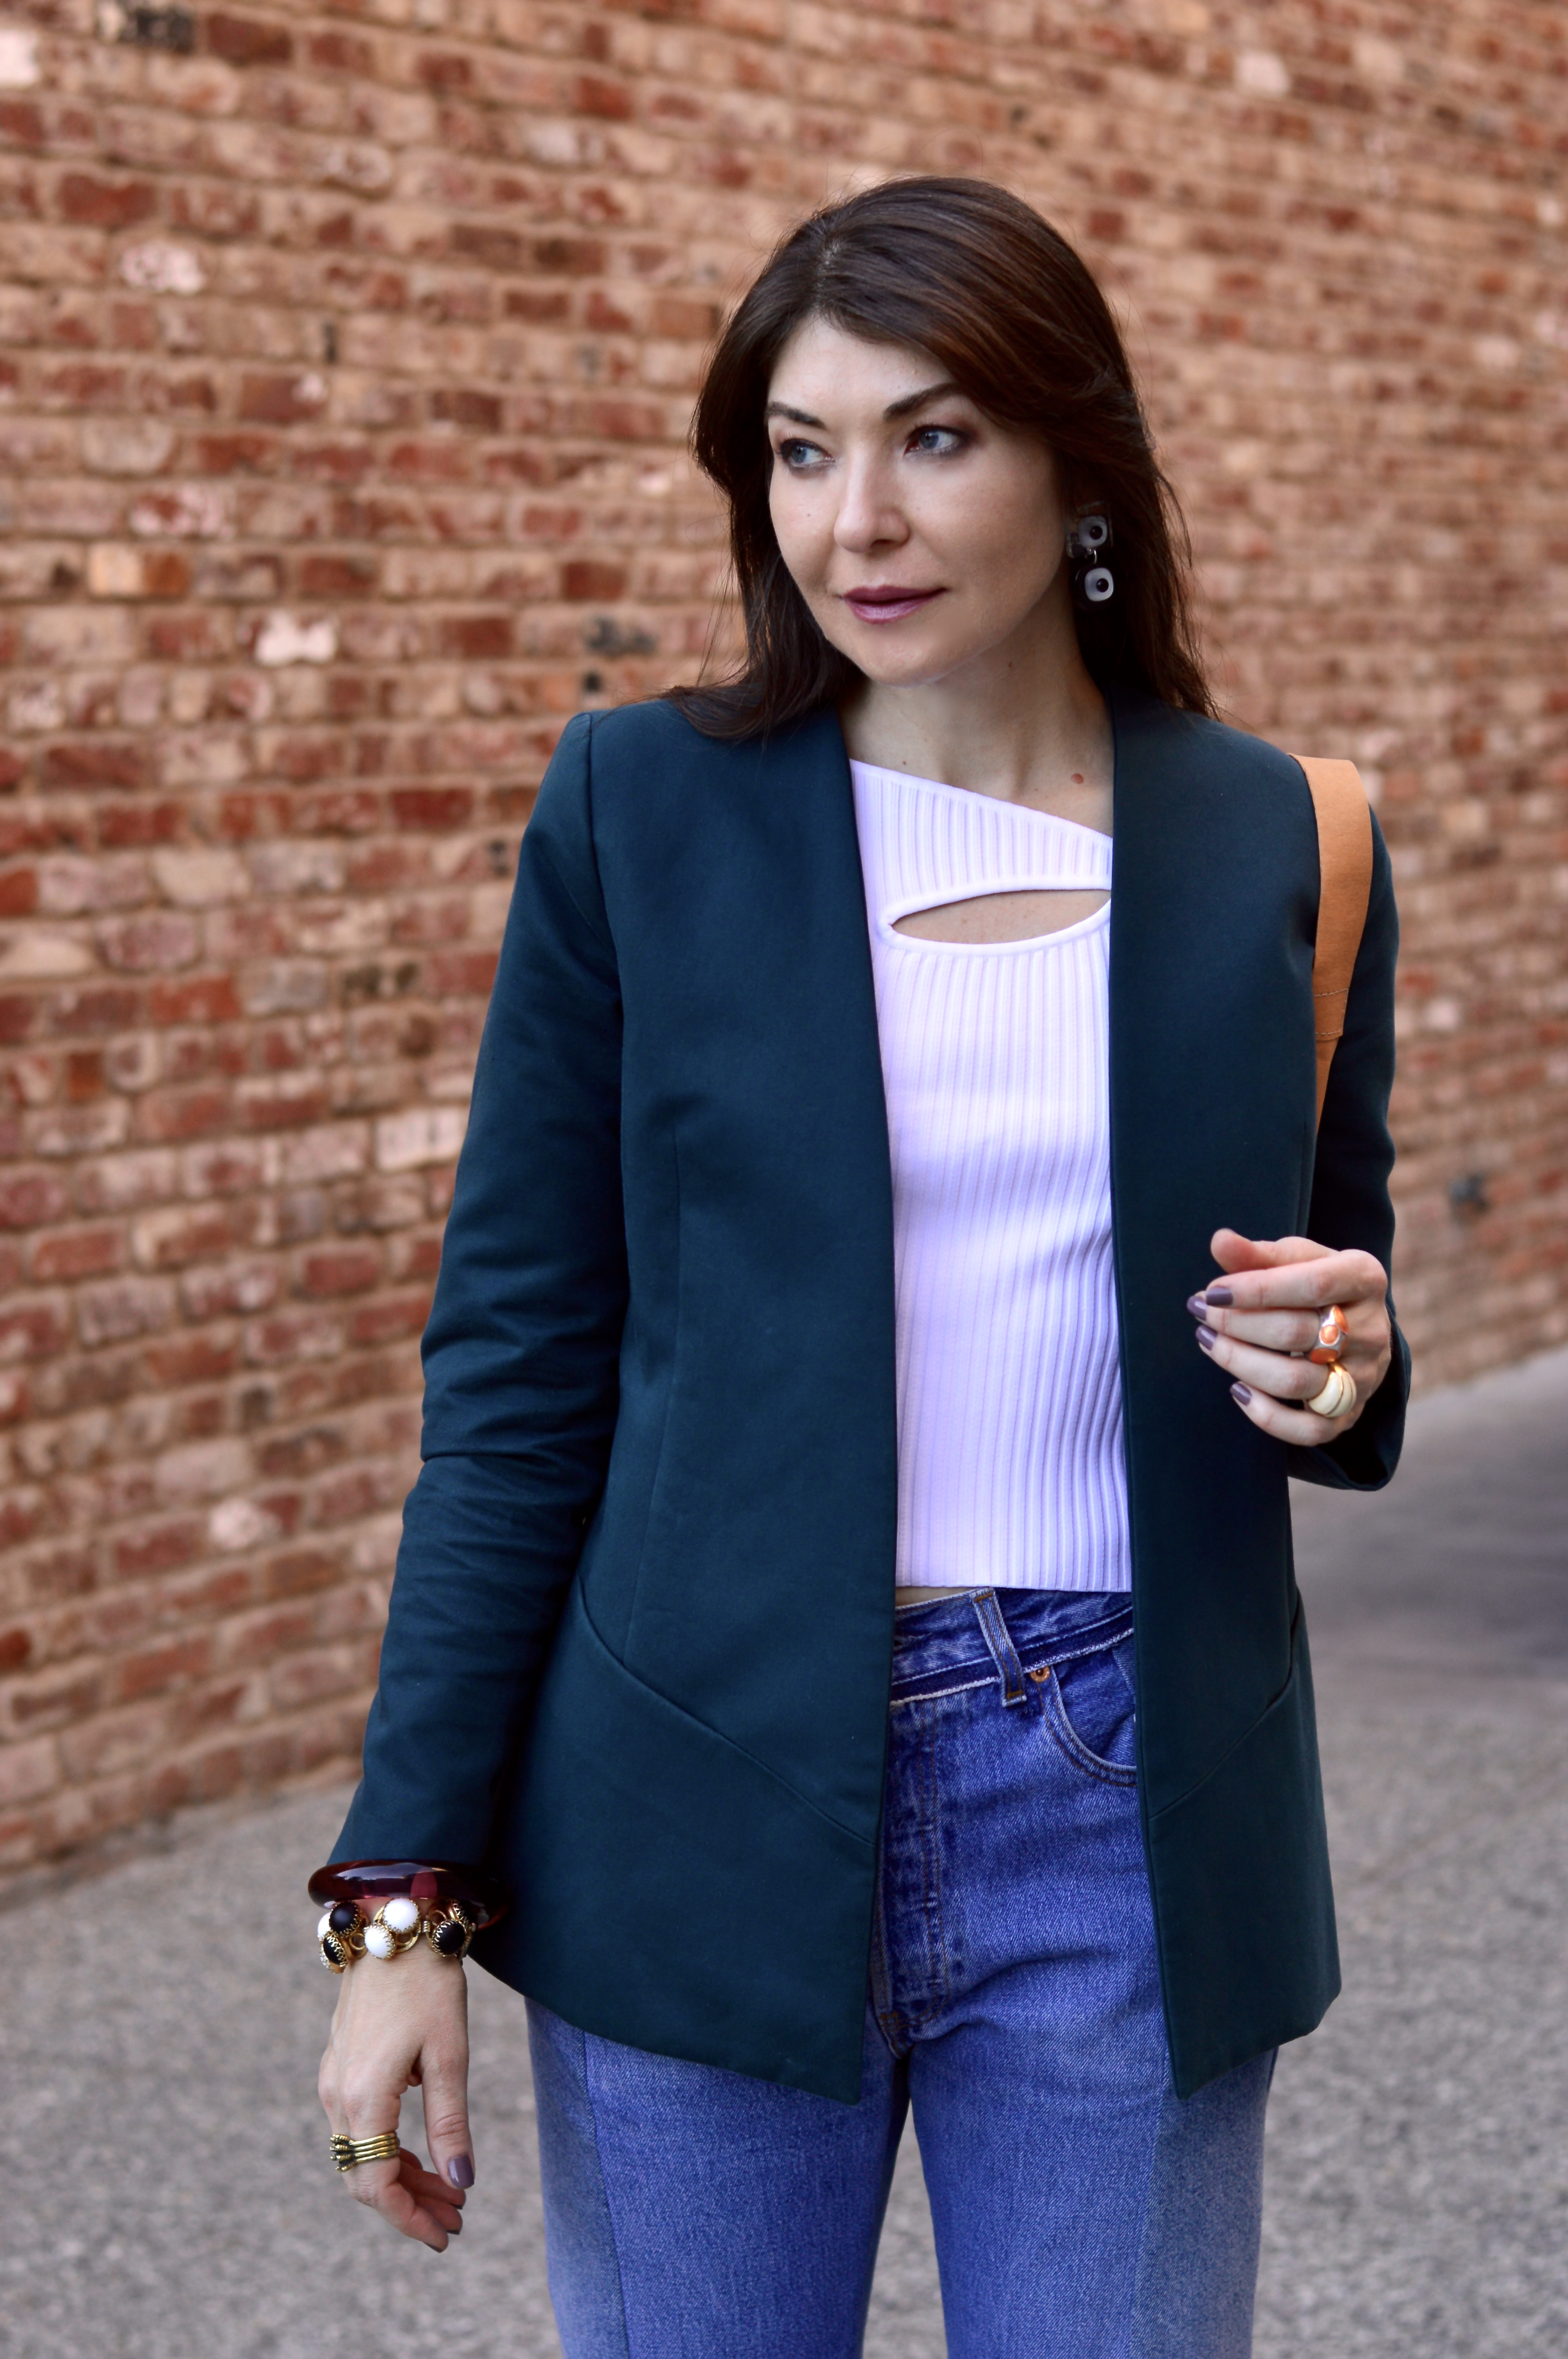 Jeans and cut-out top.